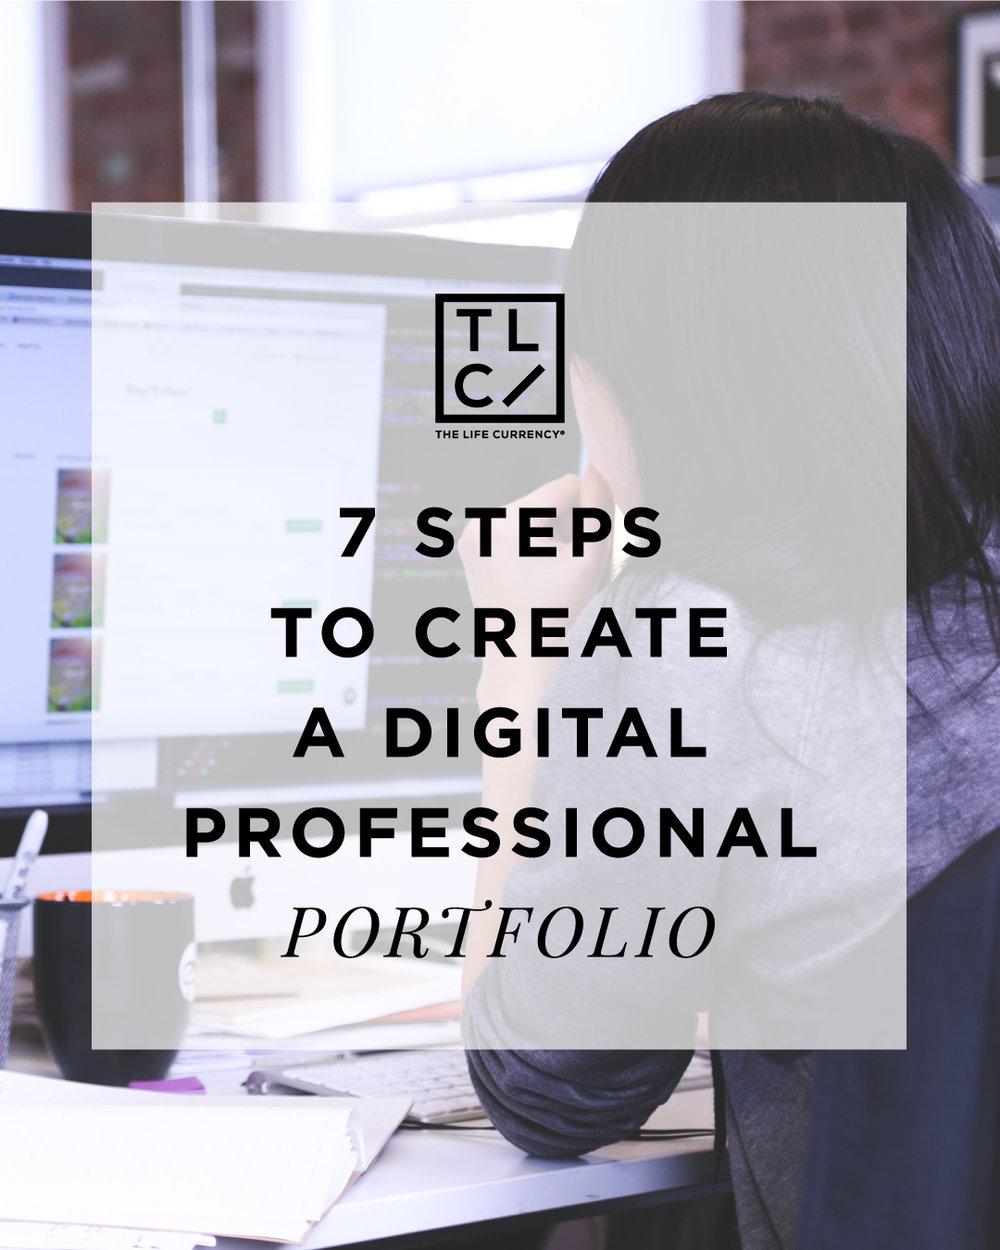 7 Steps to Create a Digital Professional Portfolio